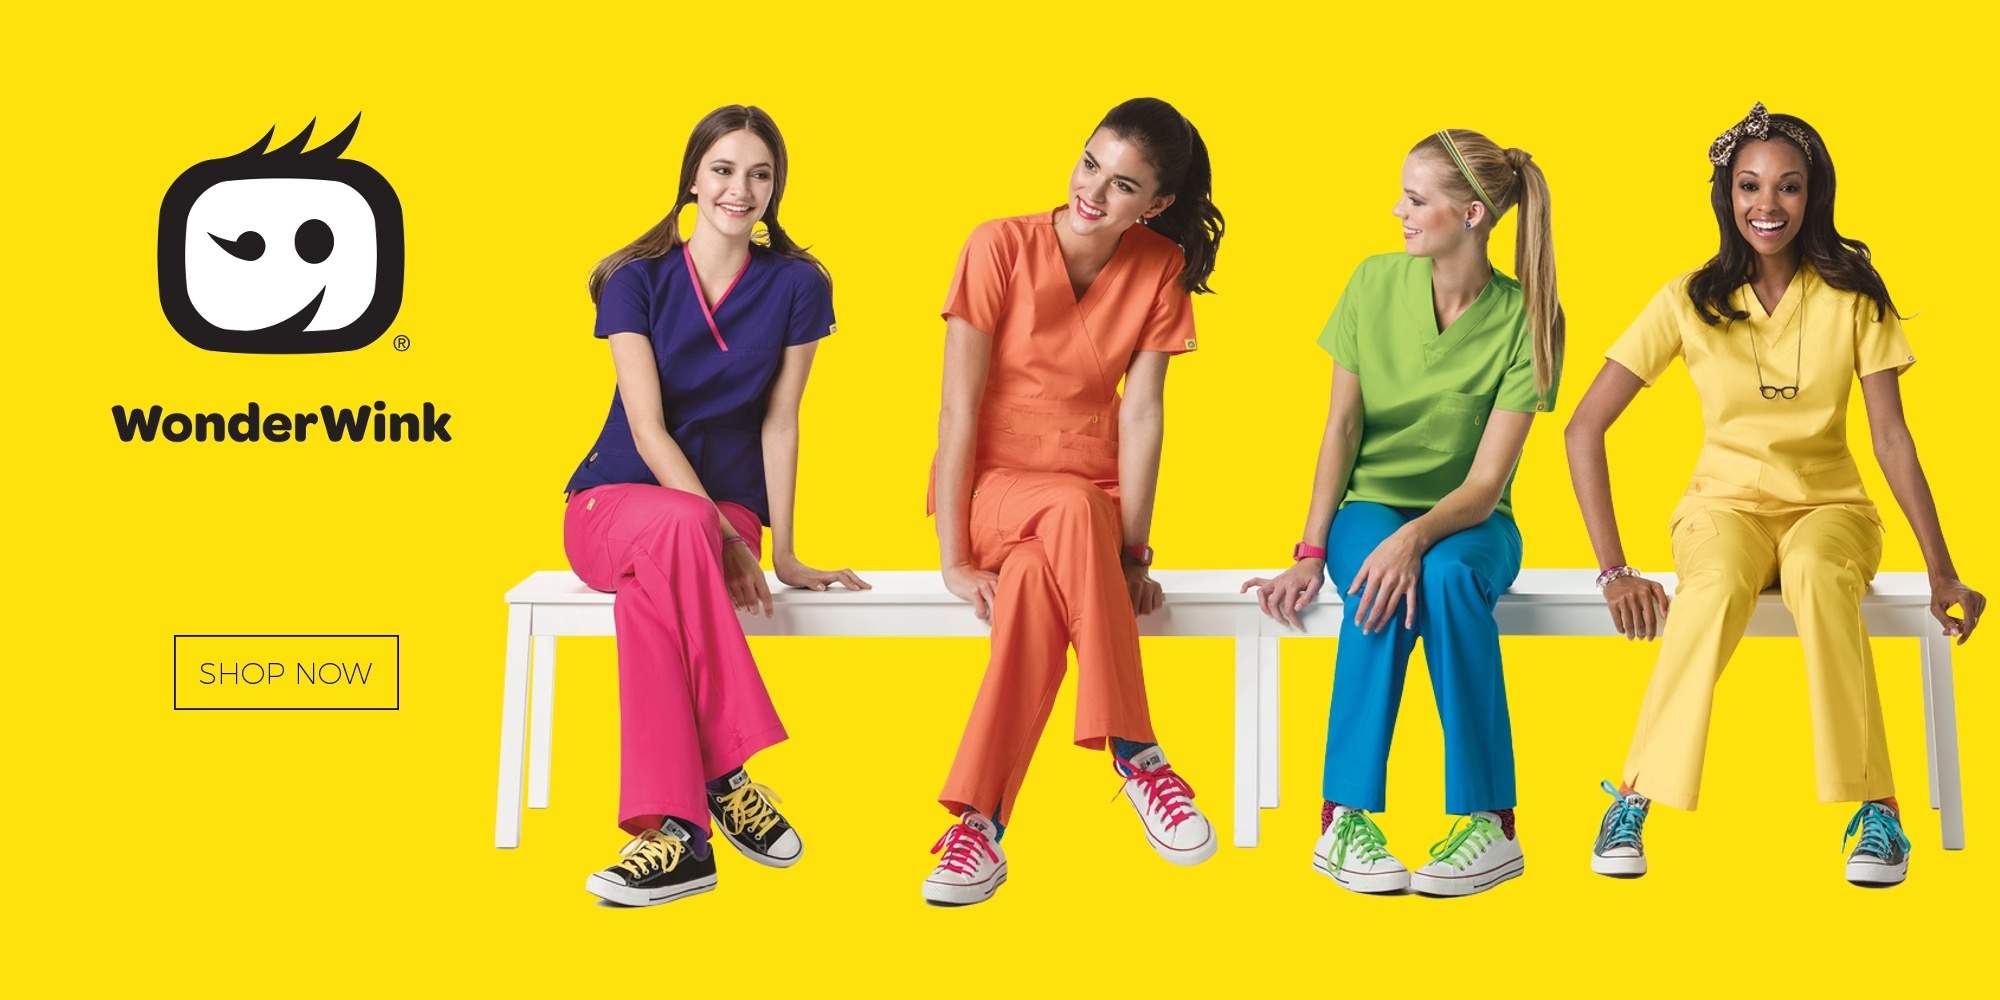 WonderWink Uniforms Scrubs